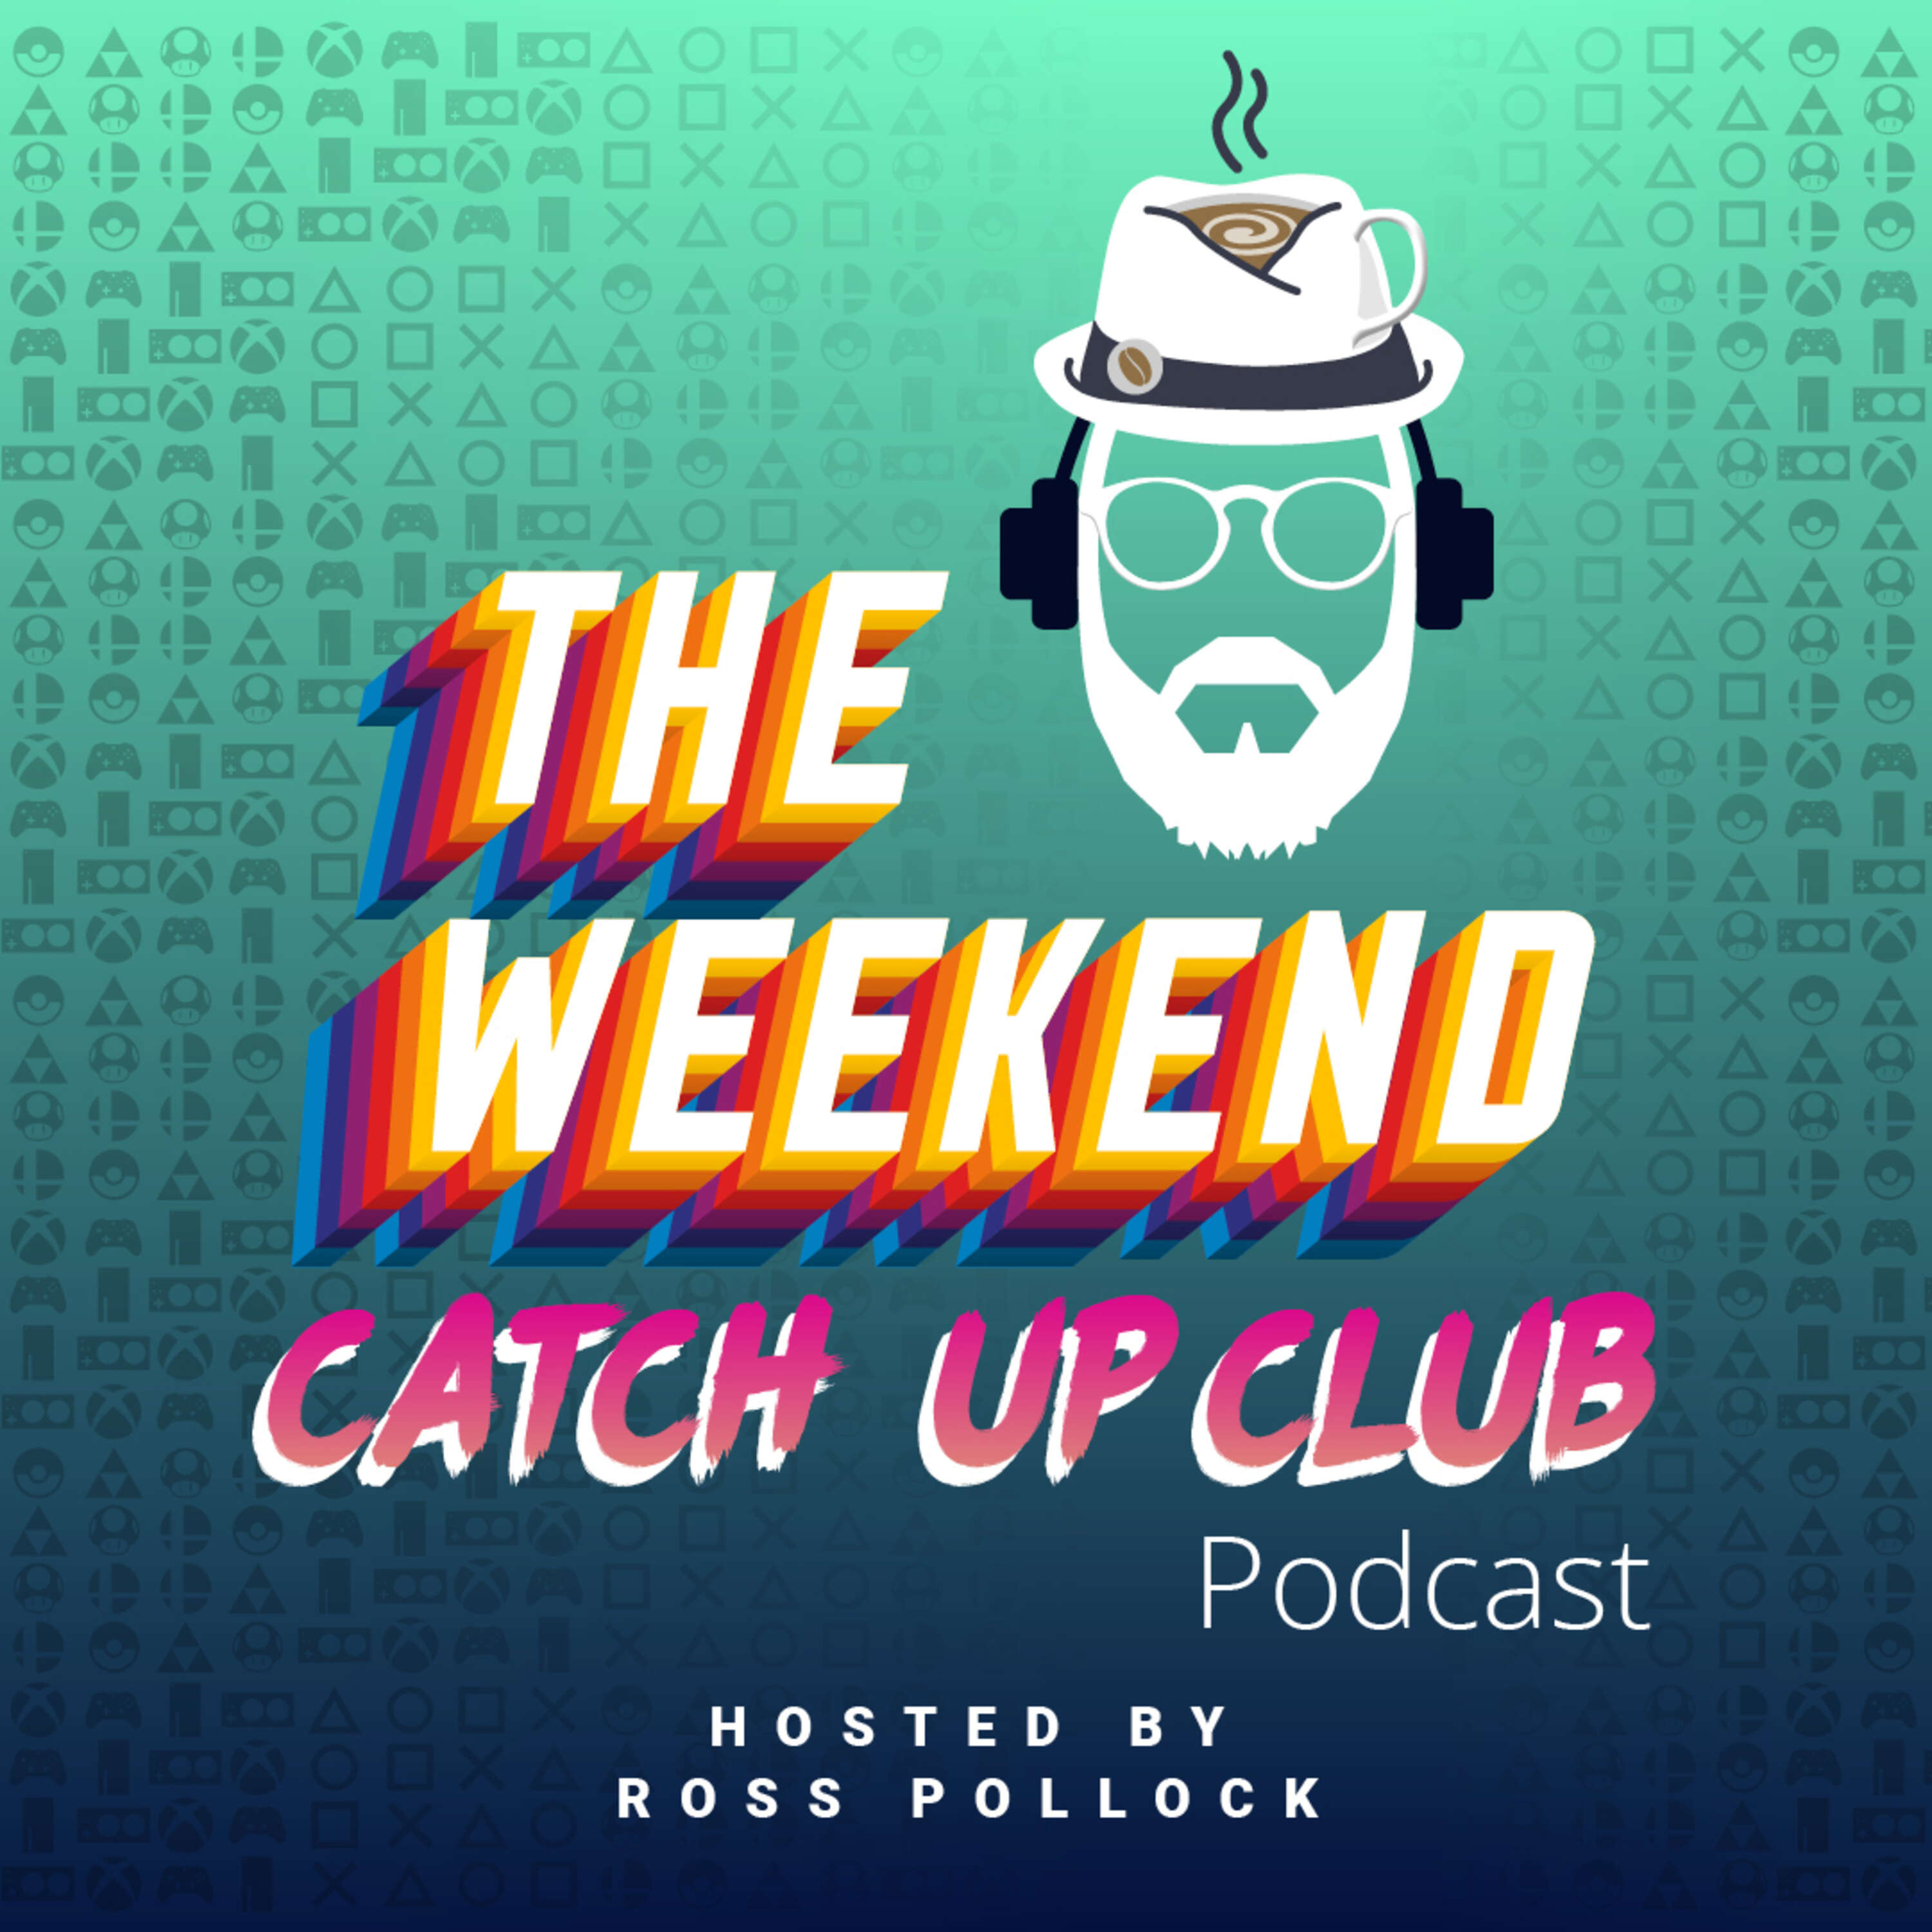 The Weekend Catch Up Club